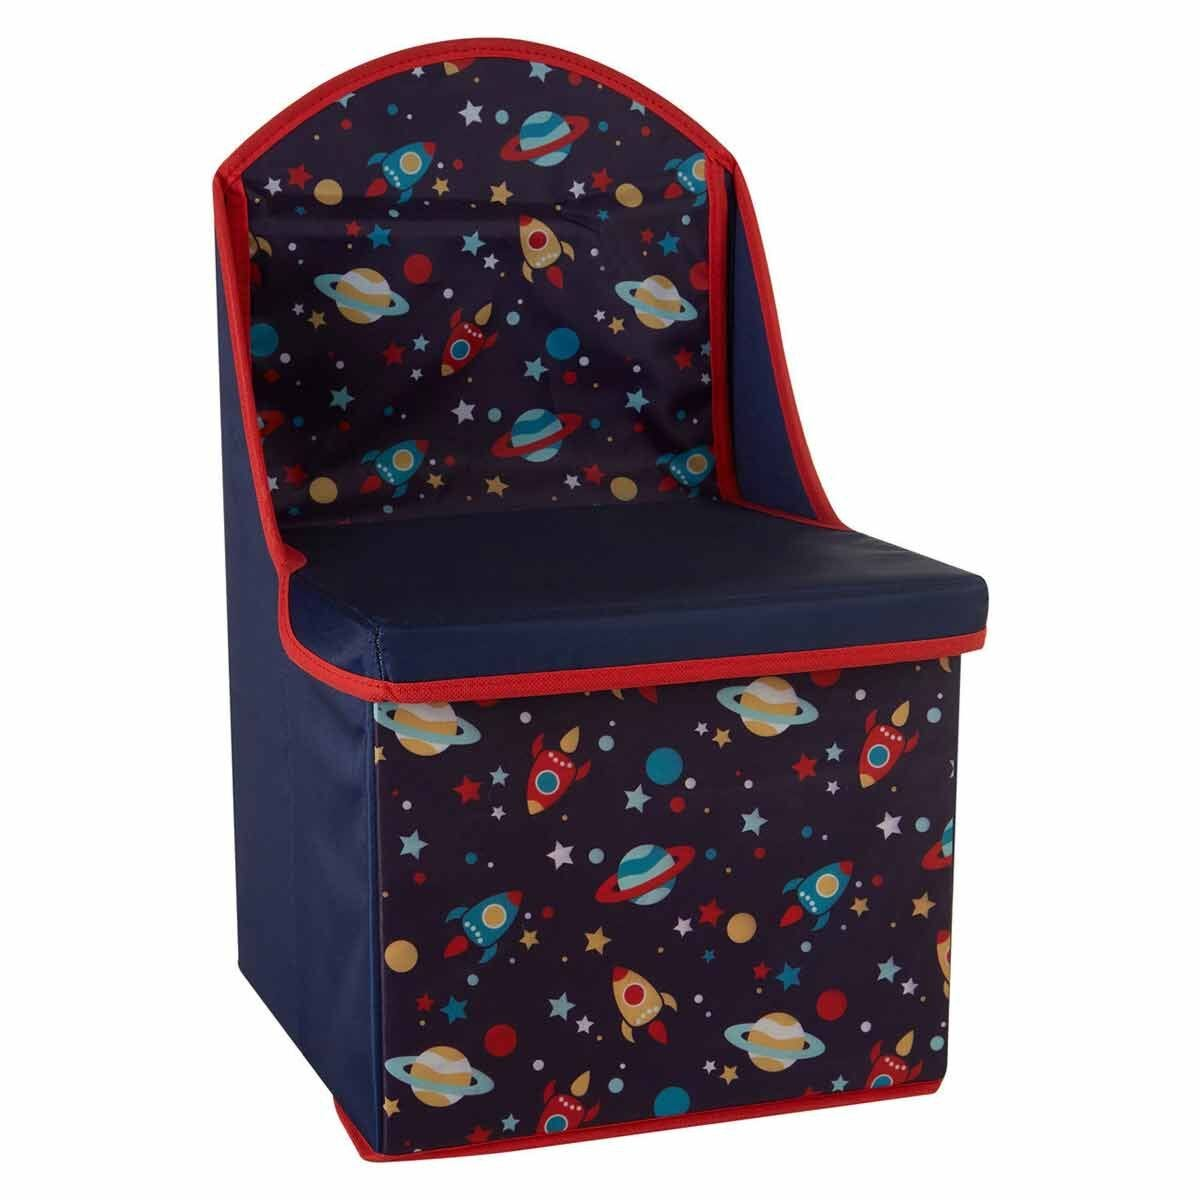 Premier Kids Cosmic Storage Box Seat